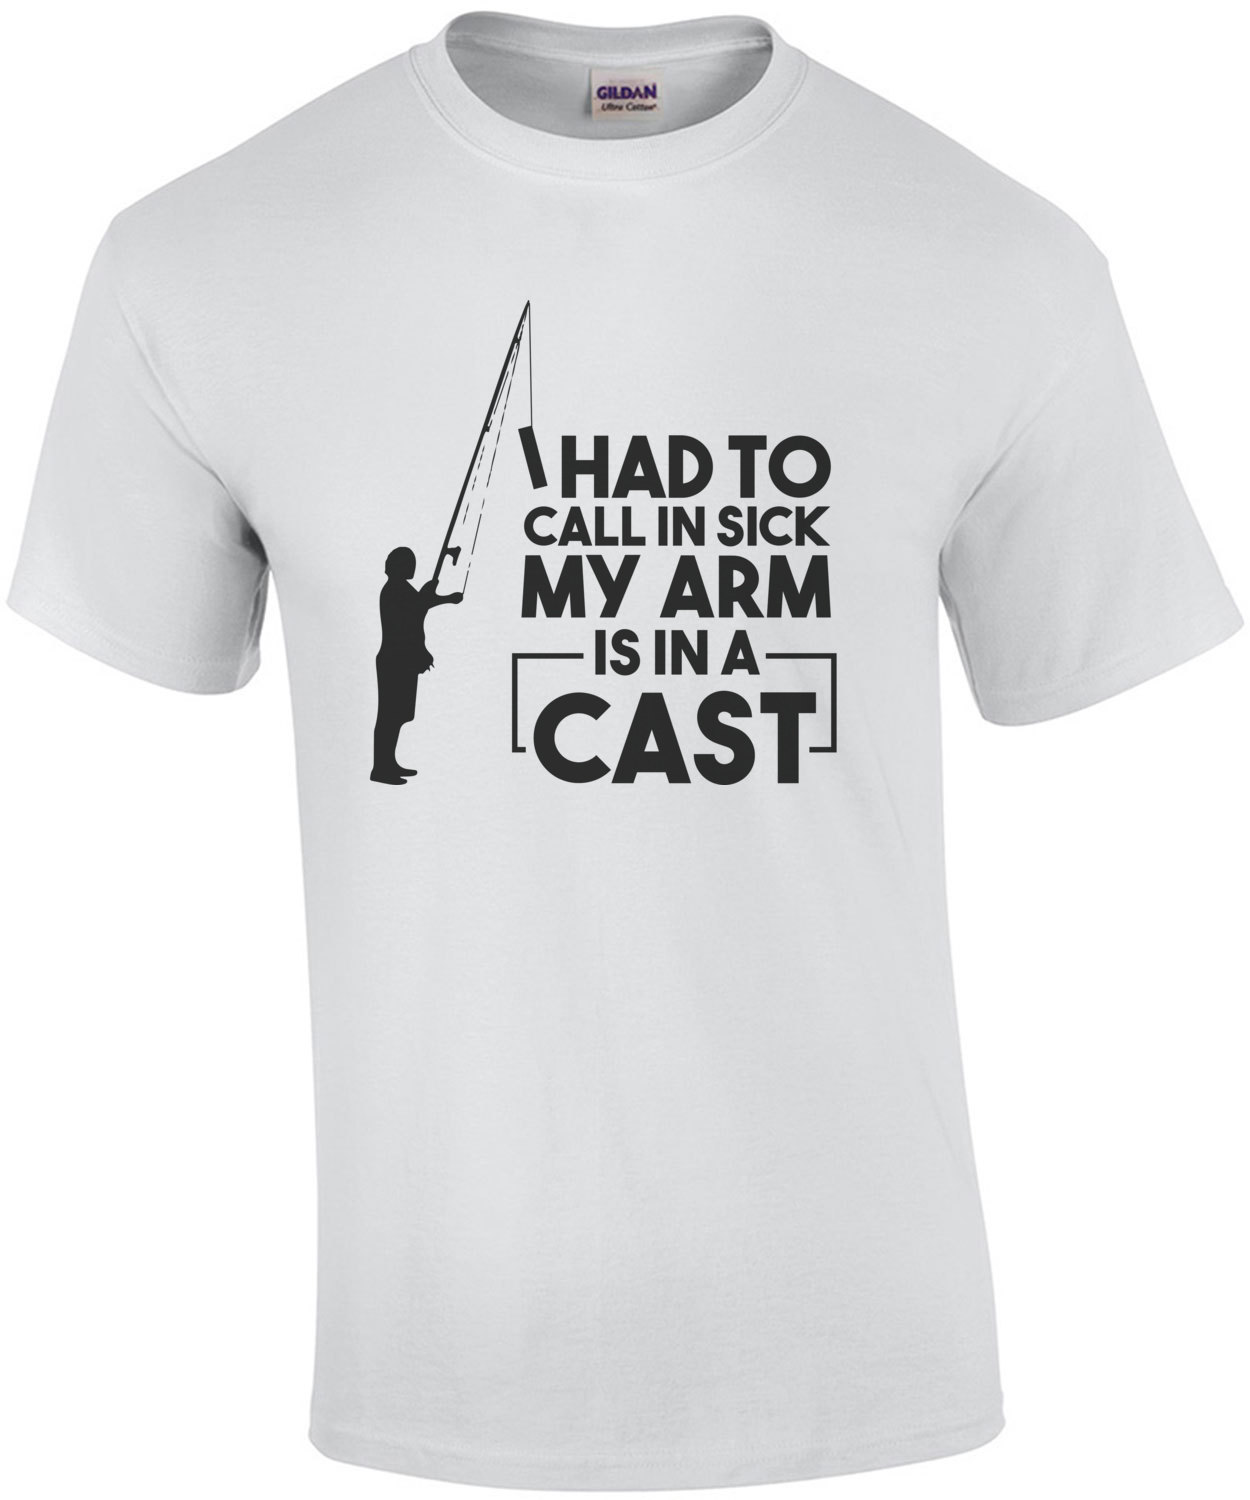 83436356 i-had-to-call-in-sick-my-arm-is-in-a-cast--funny-fishing-tshirt-3p.jpg